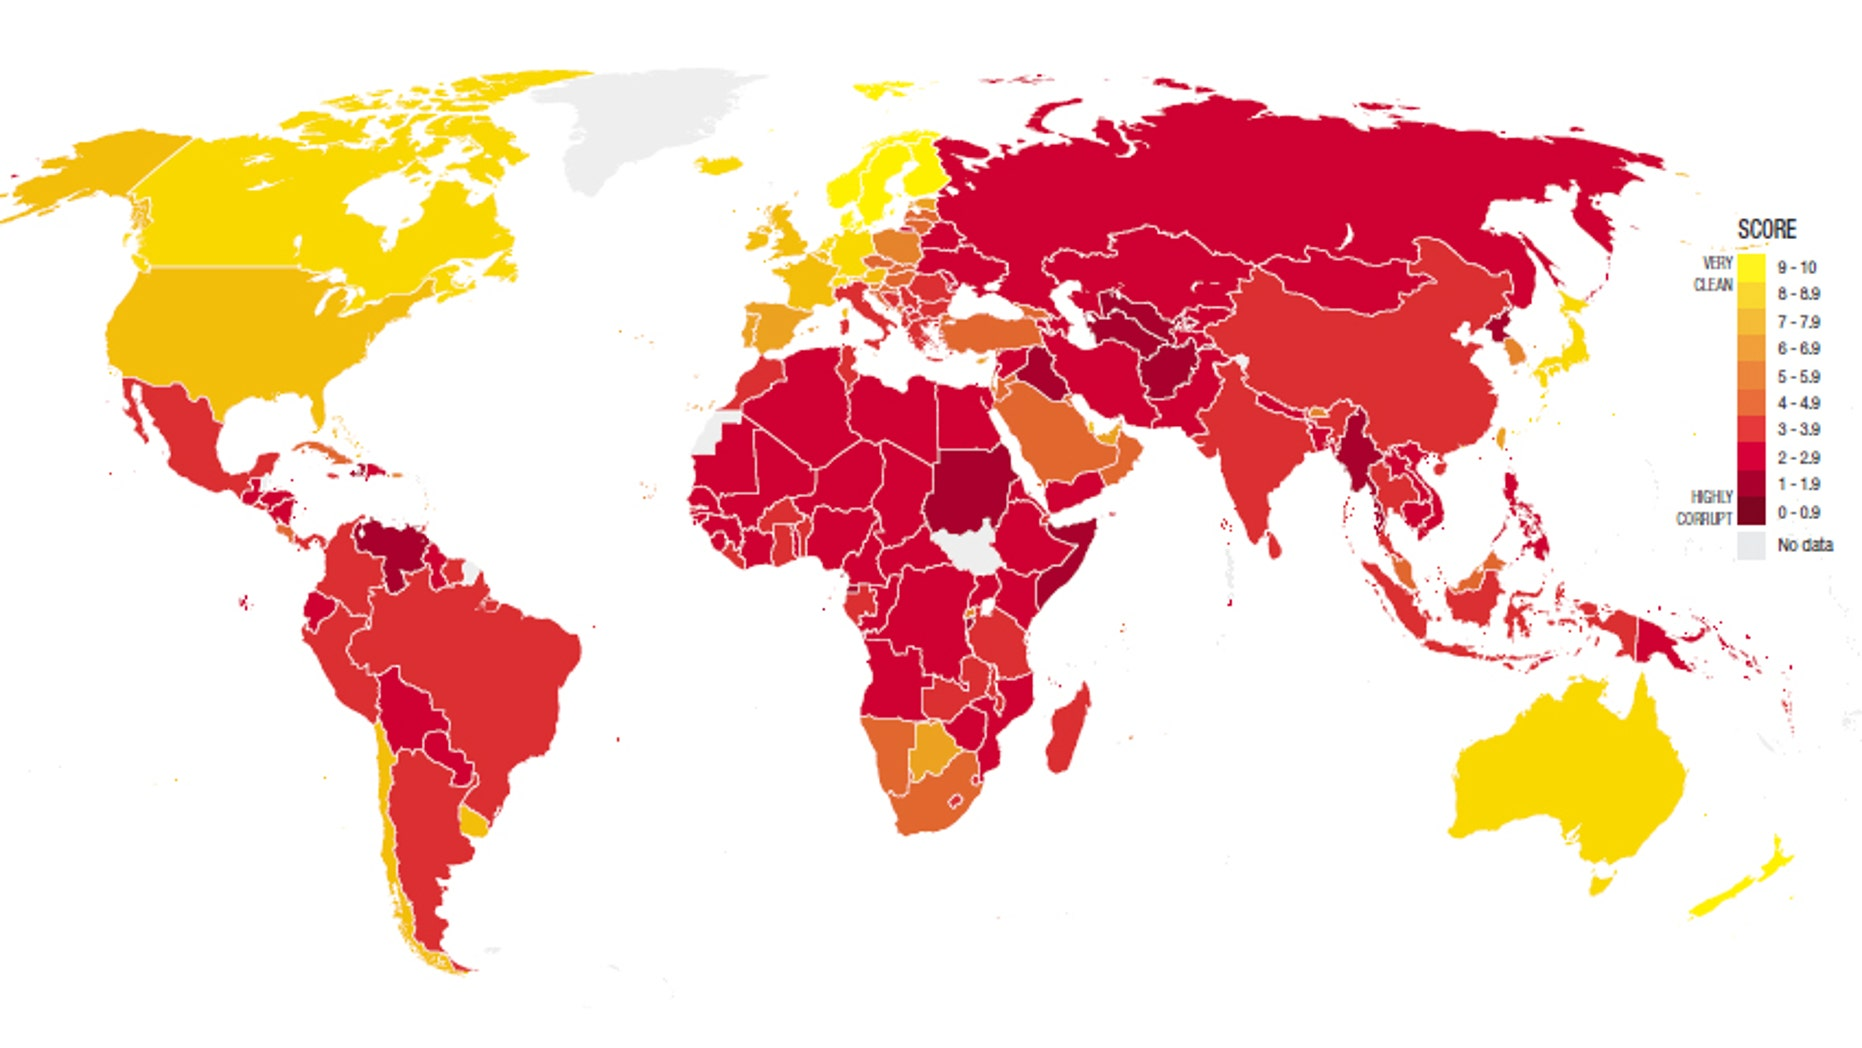 A map of the world showing corruption levels across the globe. Yellow is very clean, while dark red signifies highly corrupt.